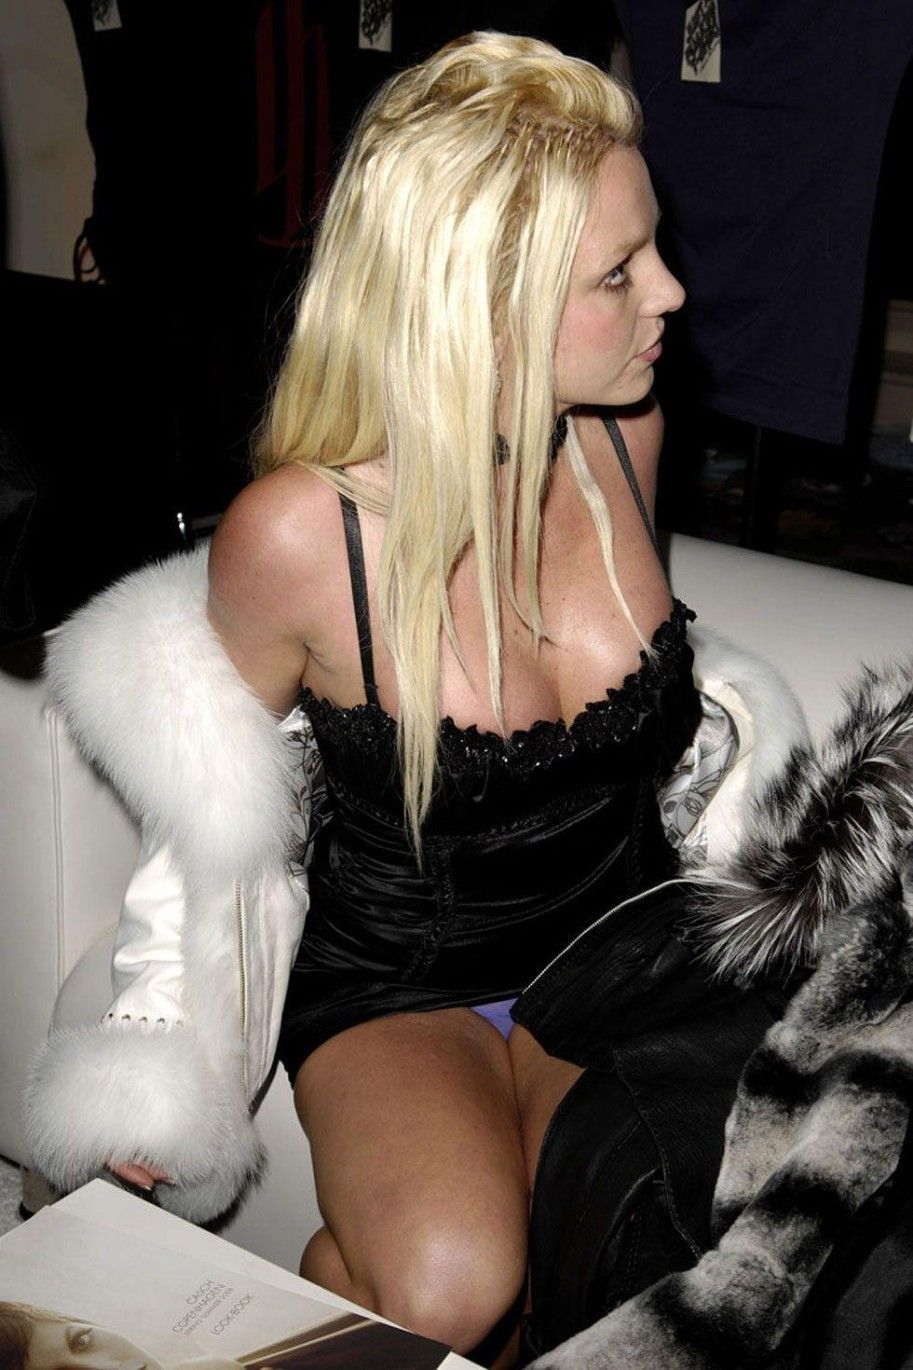 Think, that new brittney spears upskirt pic for that